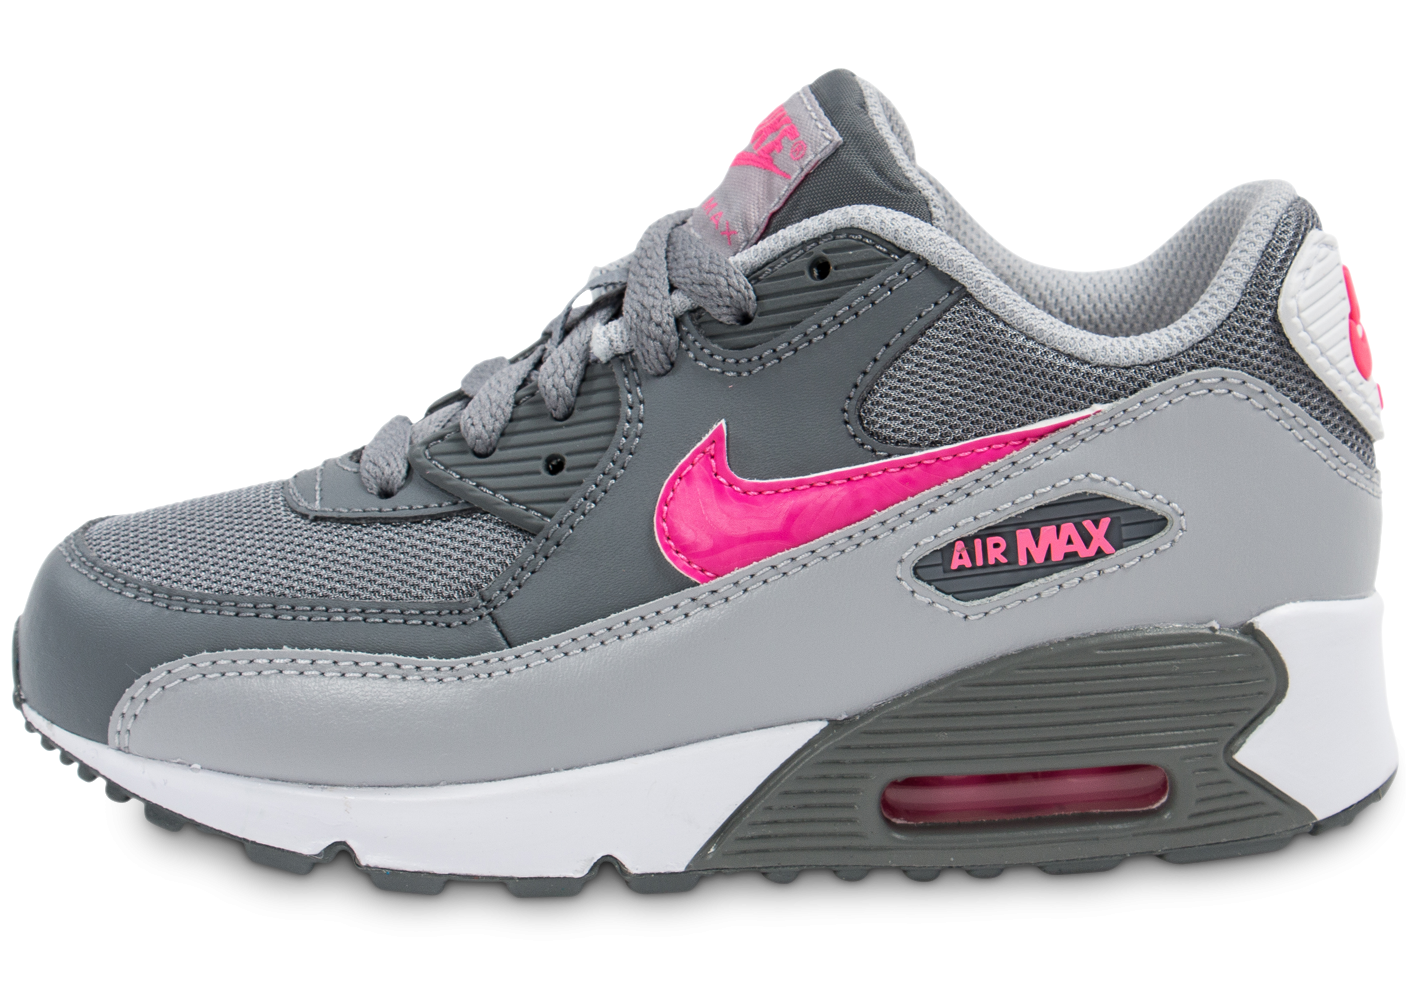 new product d88ce 87a5e air max gris rose,Chaussures Femme Running trail Nike AIR MAX 2017 Gris Rose